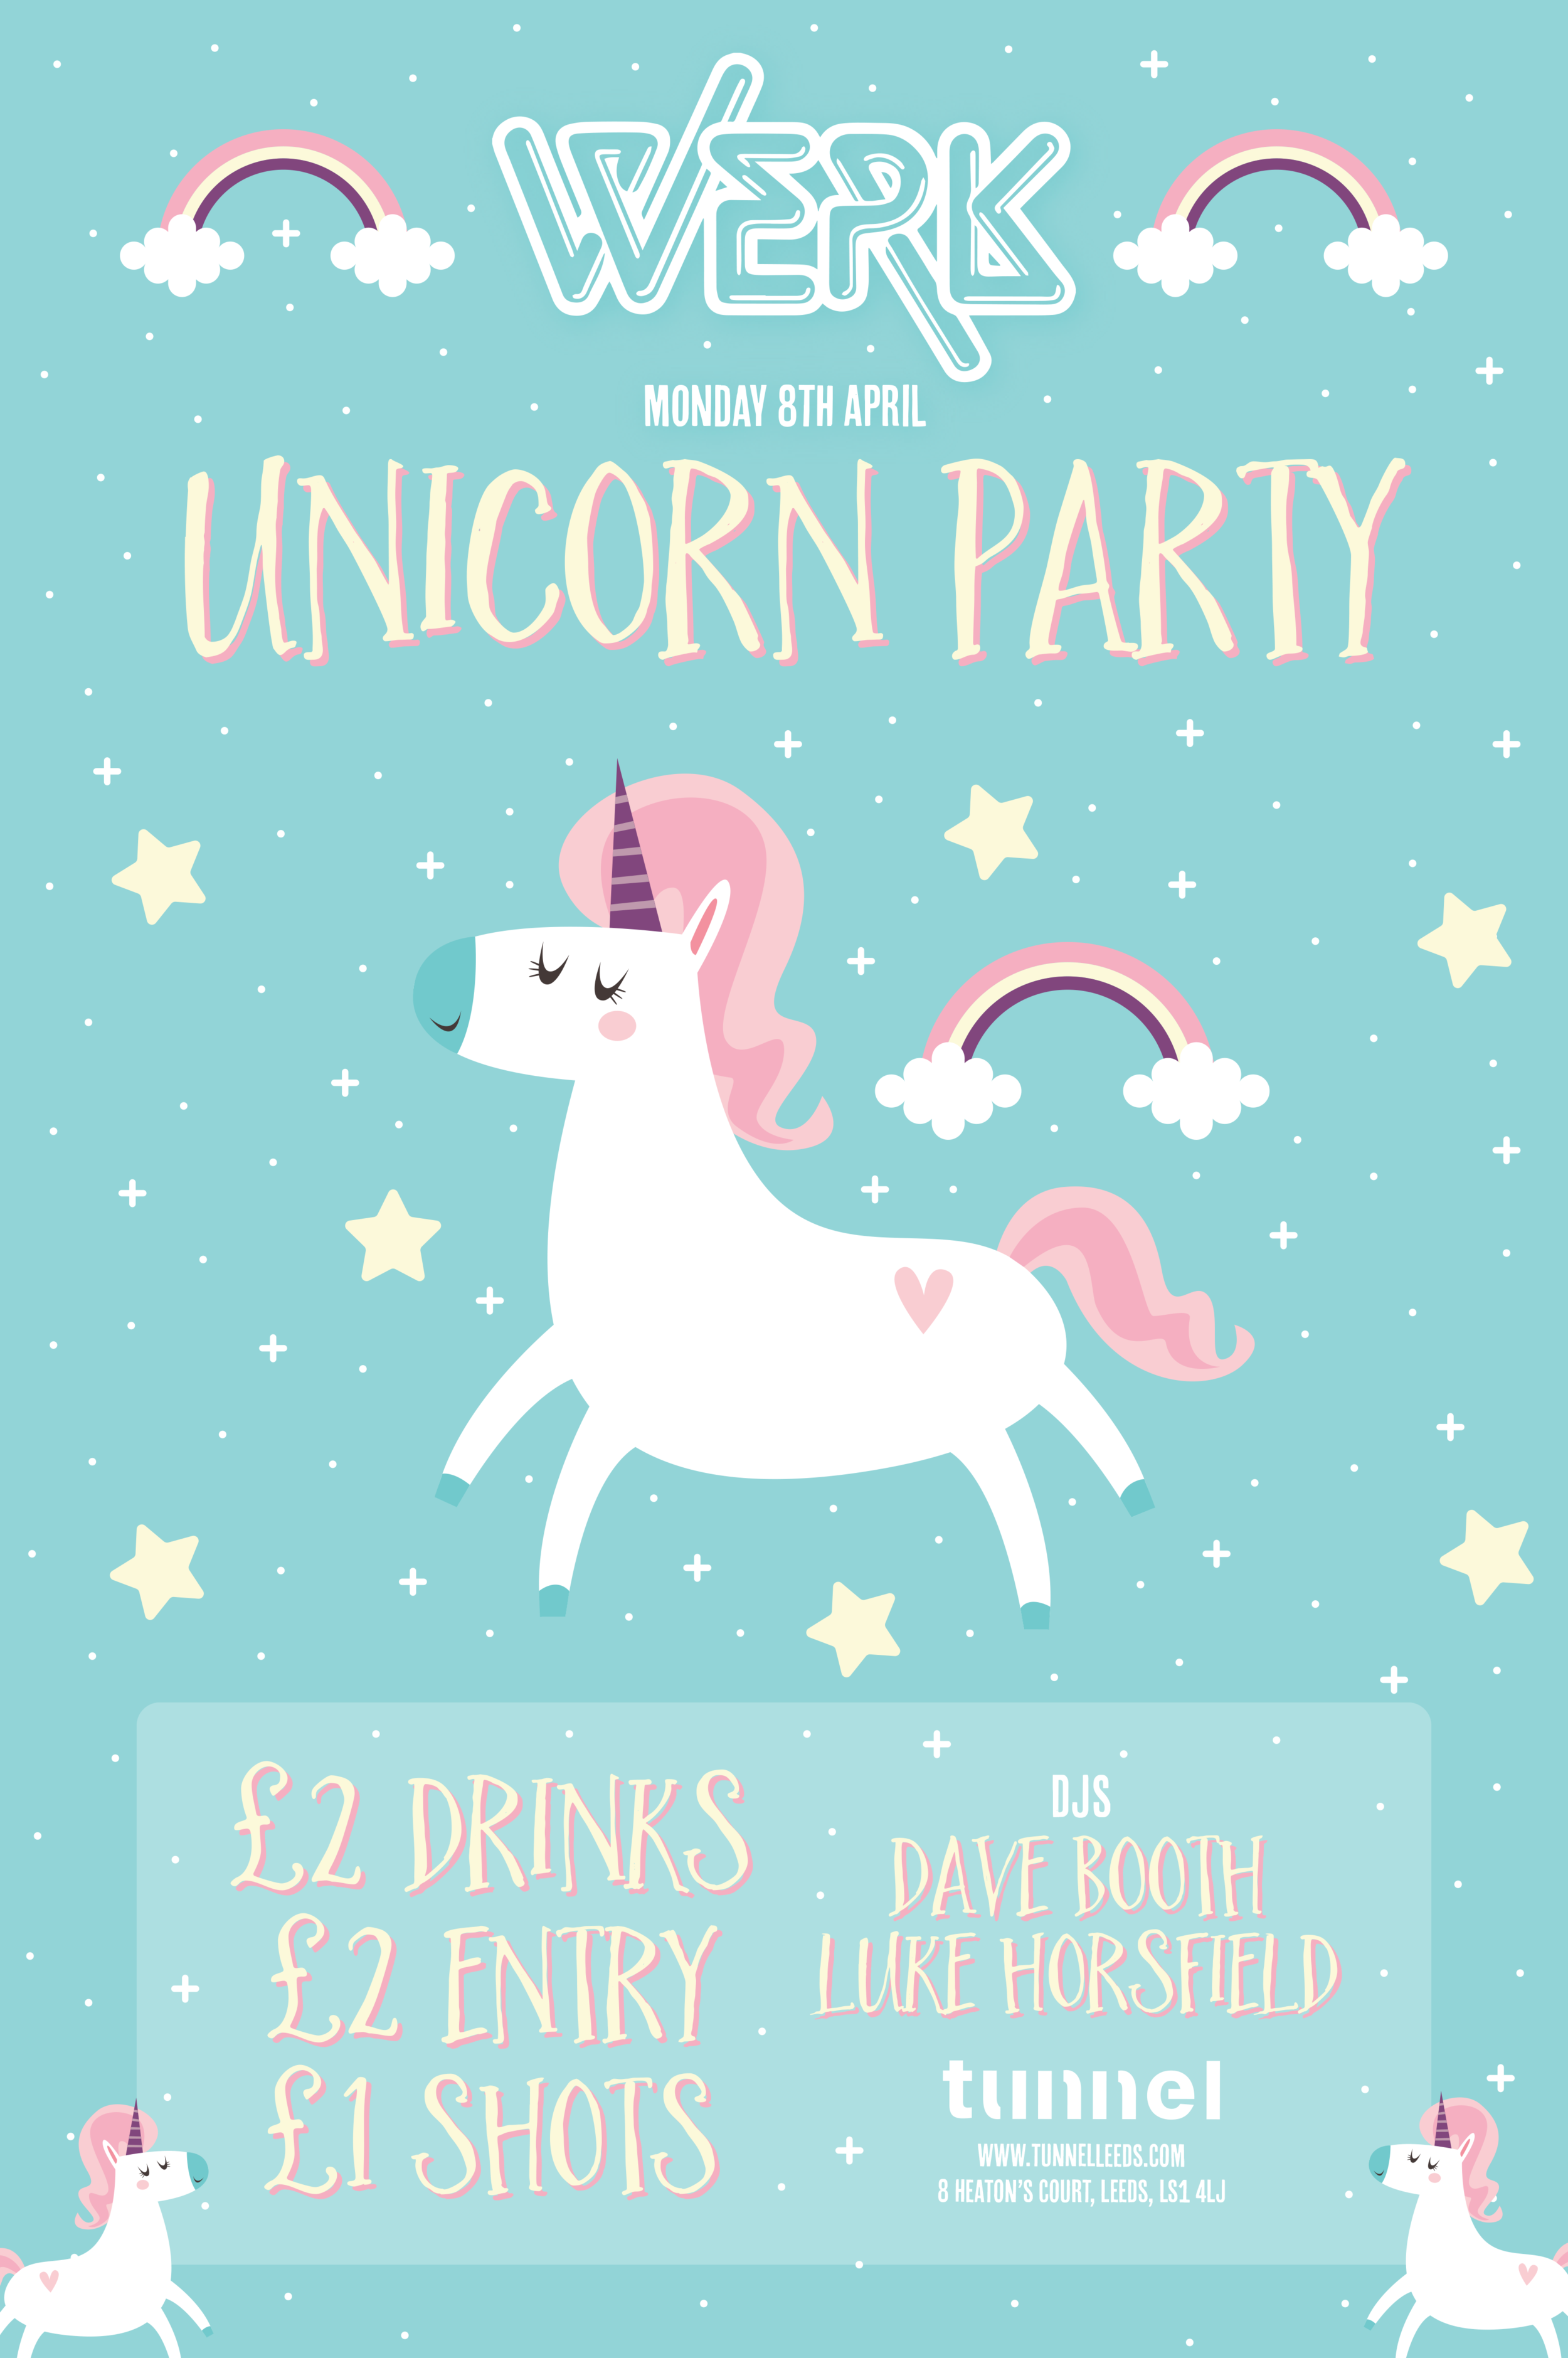 UnicornParty April19 Poster.png